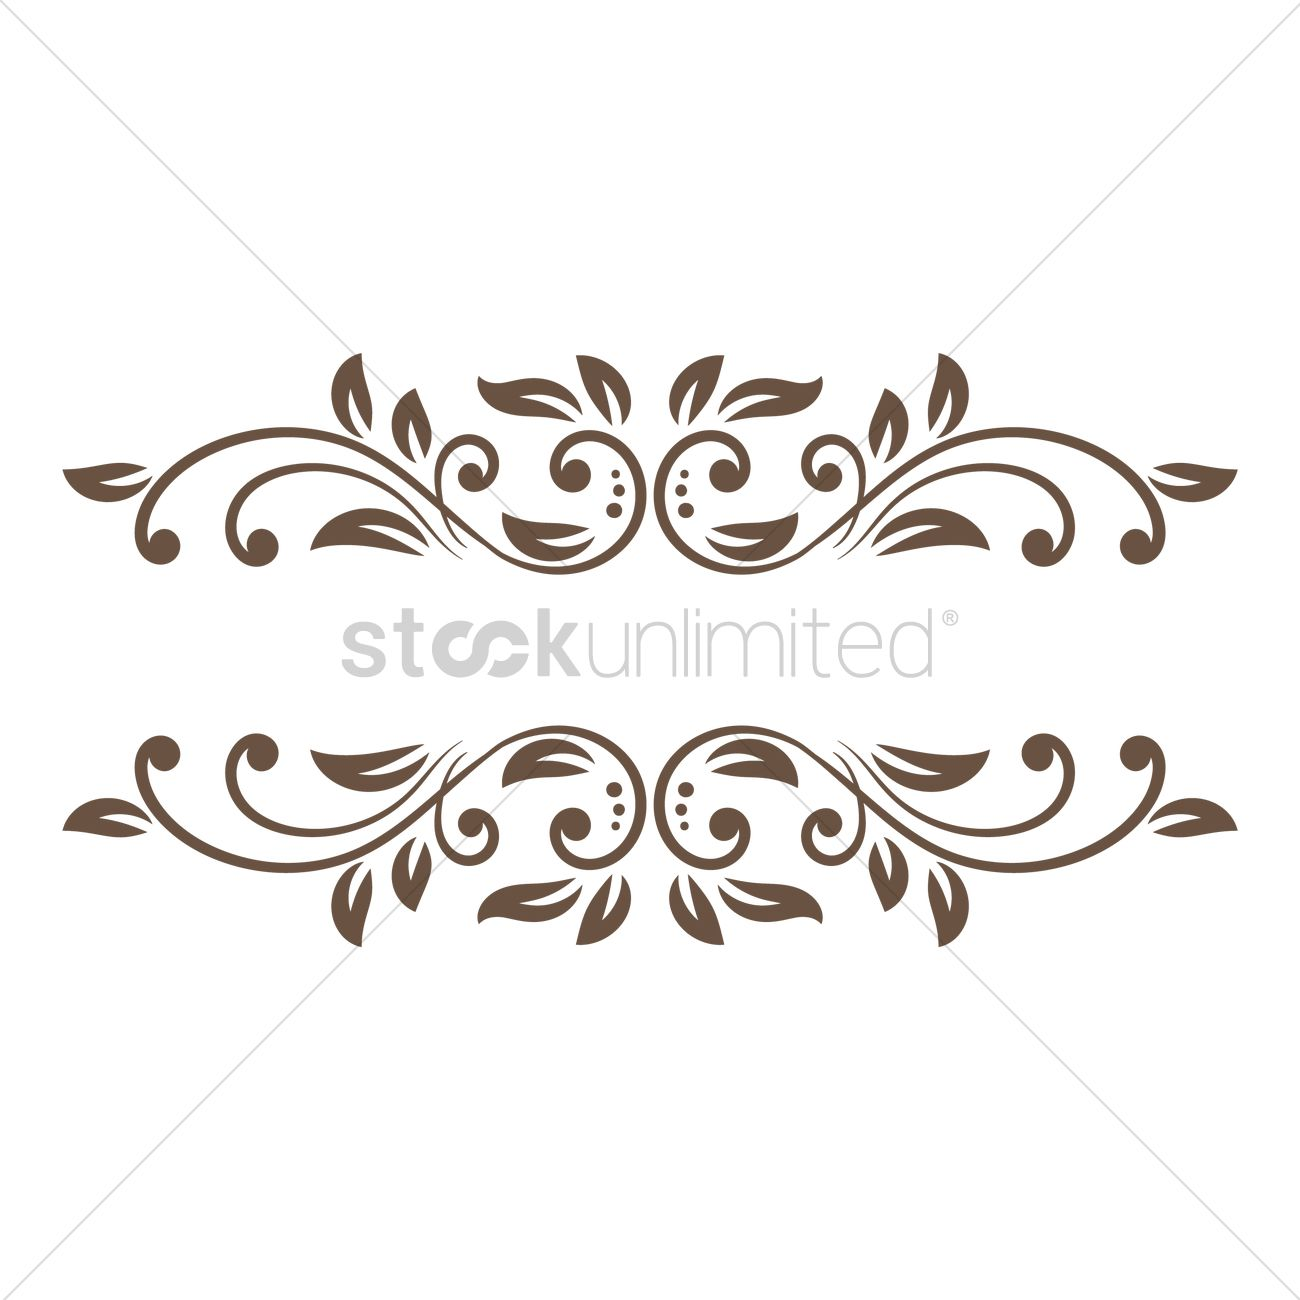 Decorative frame border Vector Image - 1873556 | StockUnlimited